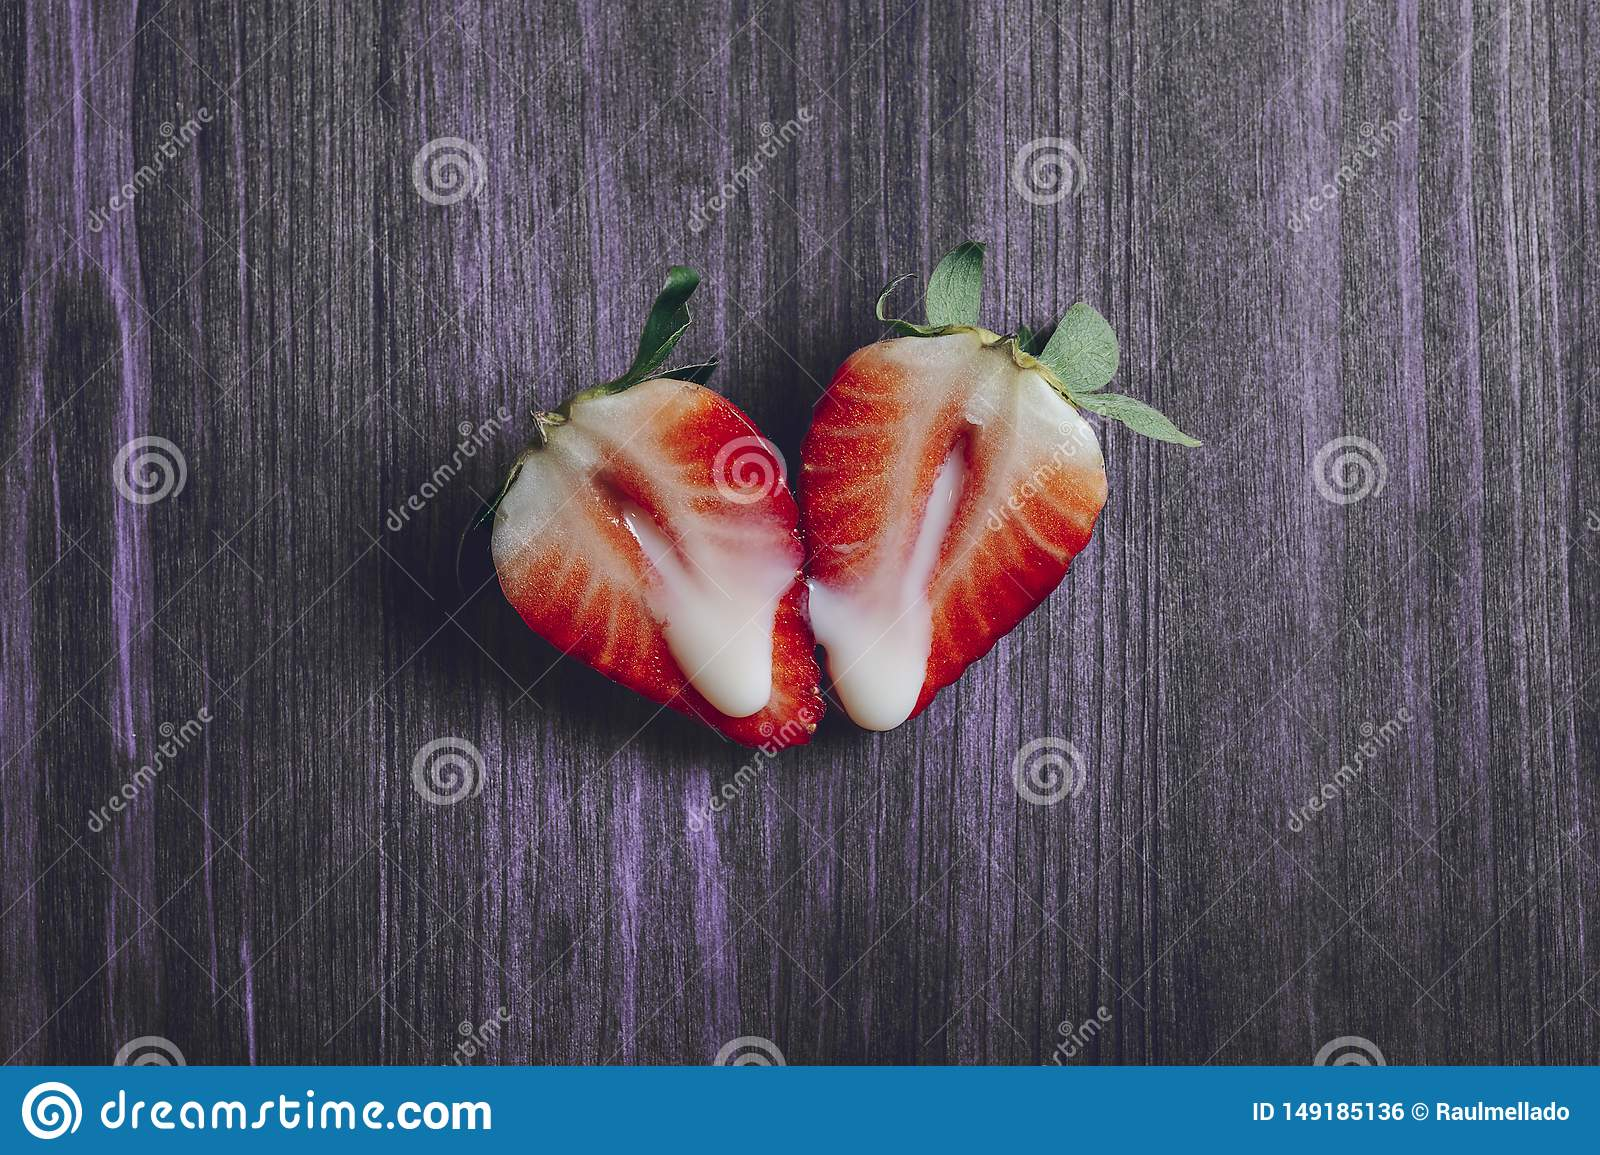 strawberries and sex